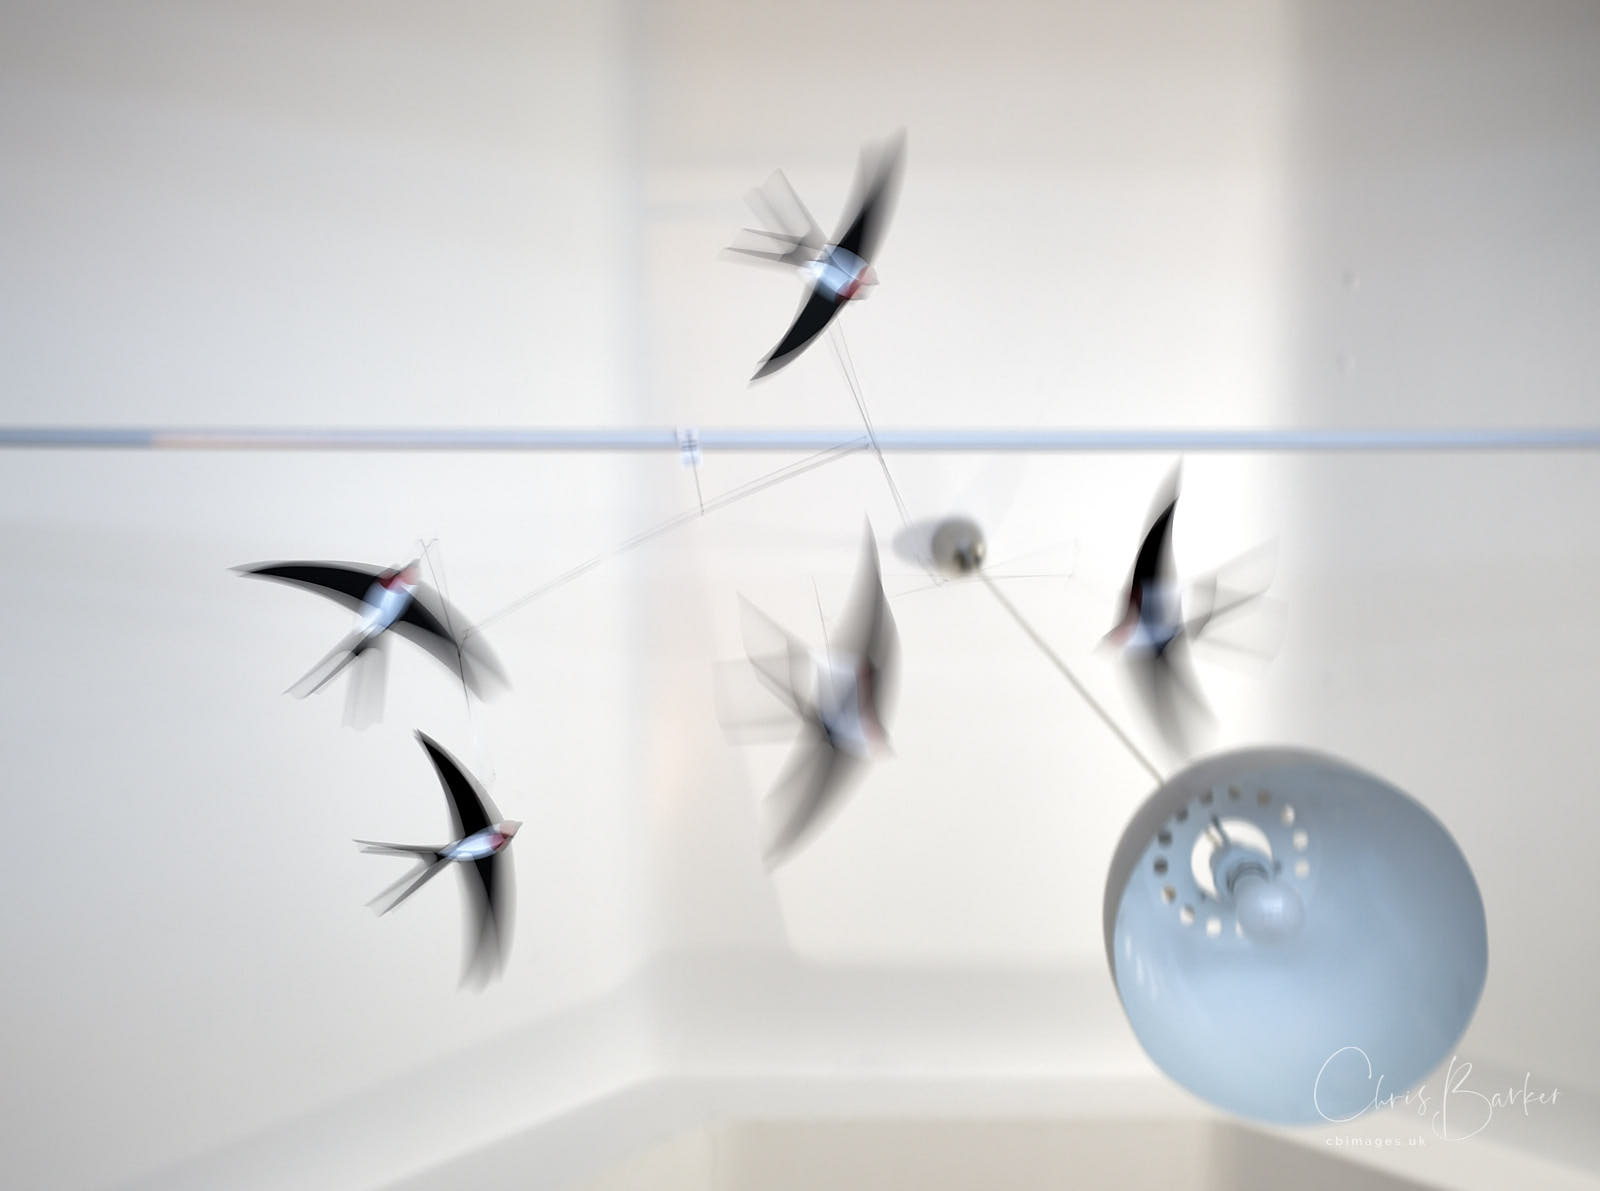 Blurred model swallows on a mobile above the photographer